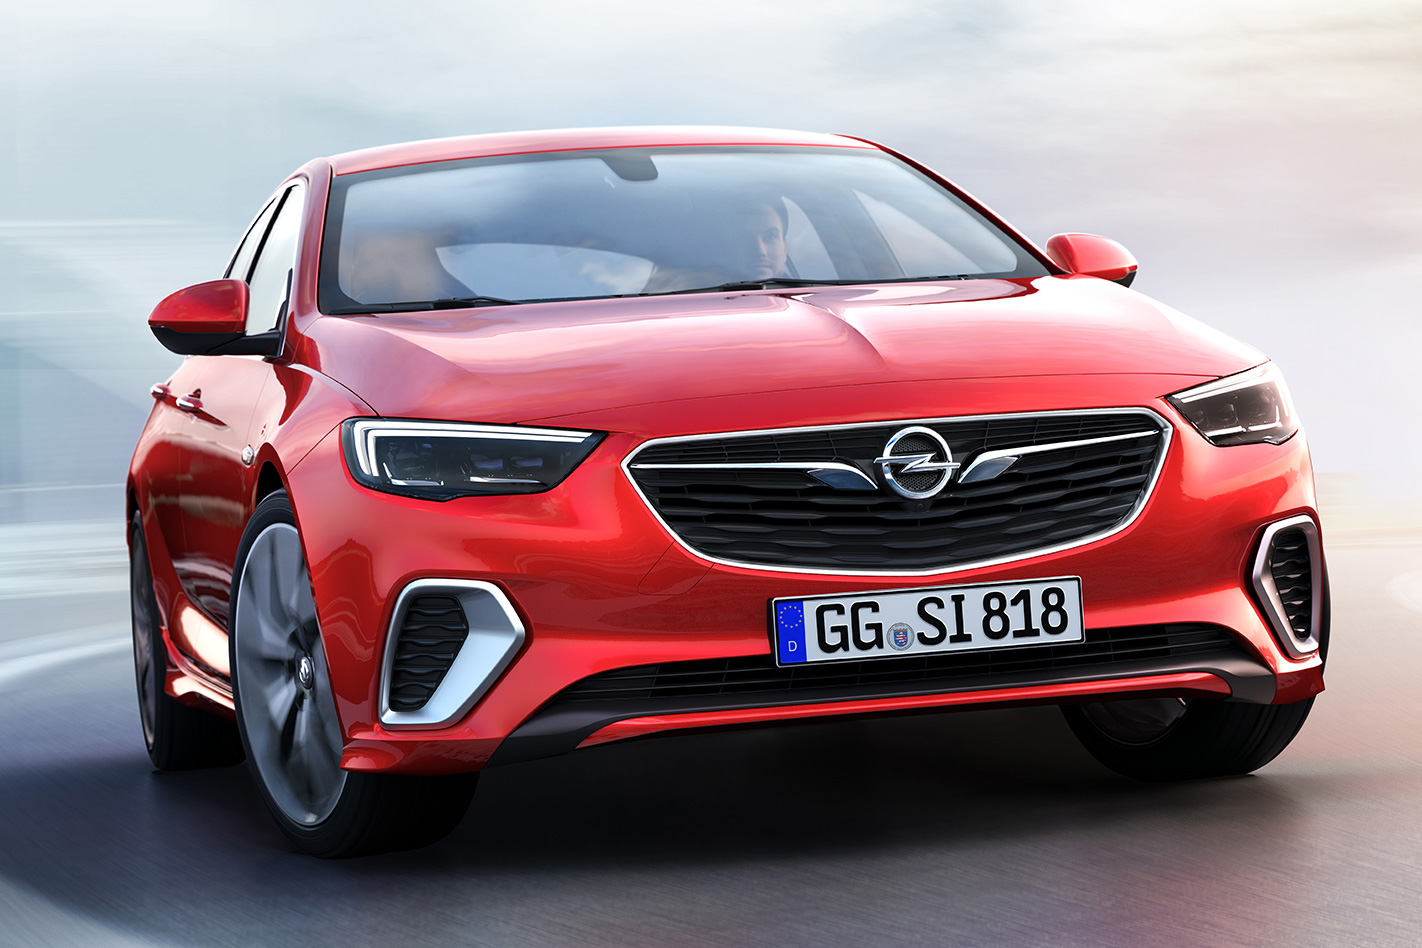 2017 Opel Insignia GSi looks a bit like the 2018 Holden Commodore VRX